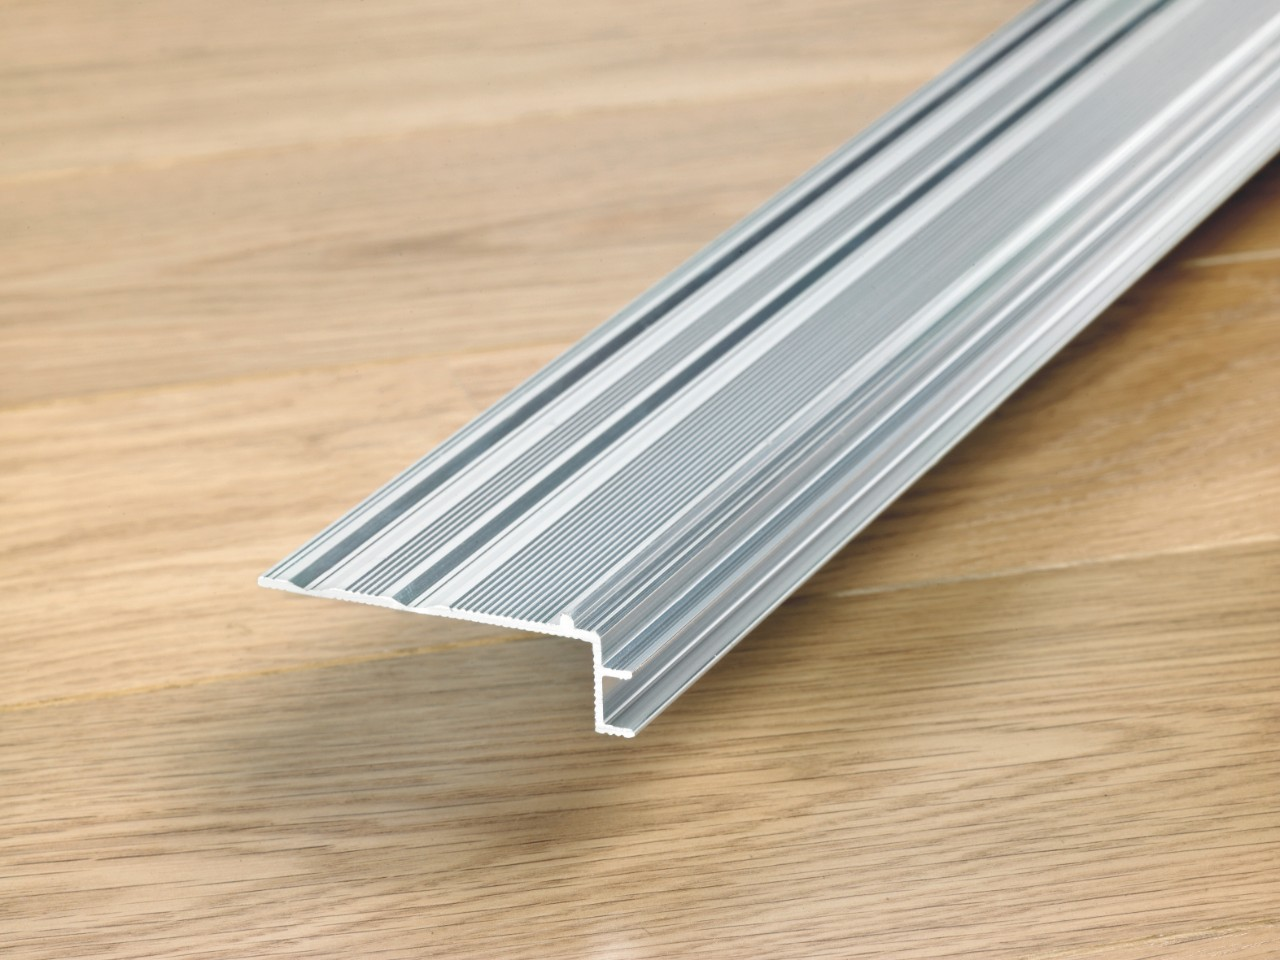 NEINCPBASE Laminate Accessories Incizo Aluminium Subprofile For Stairs NEINCPBASE3